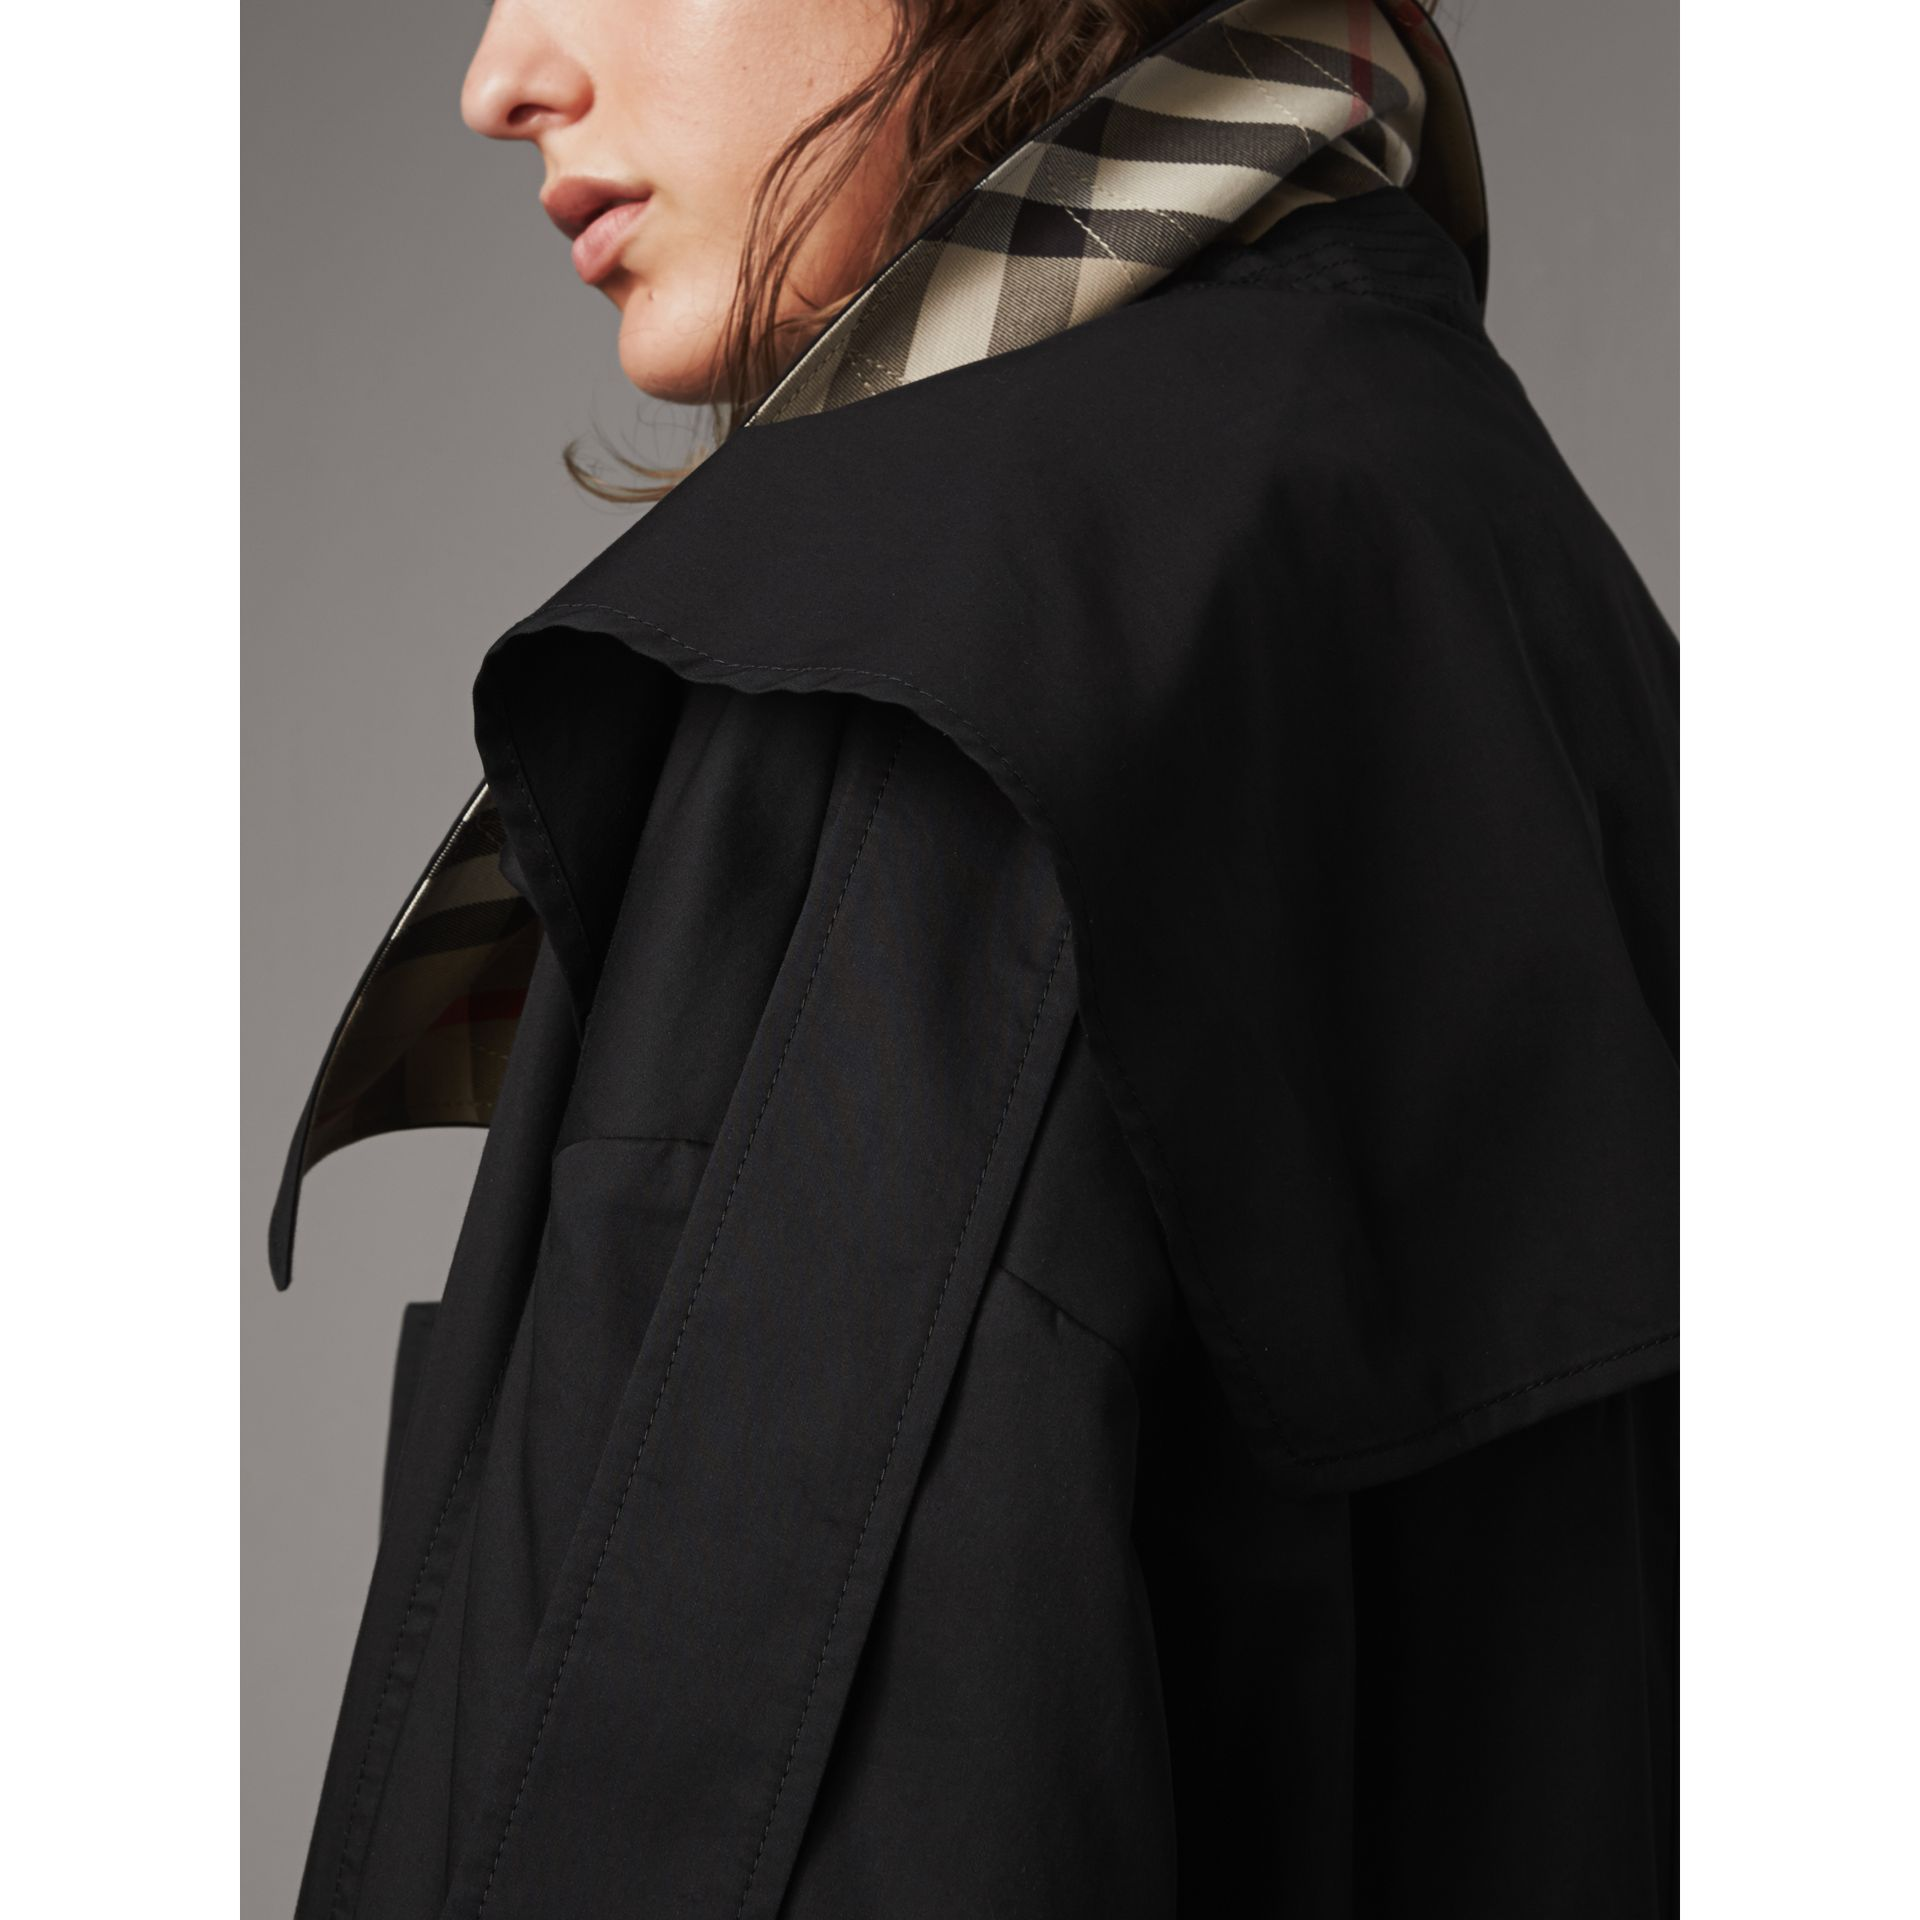 Cotton Asymmetric Trench Coat in Black - Women | Burberry Singapore - gallery image 5